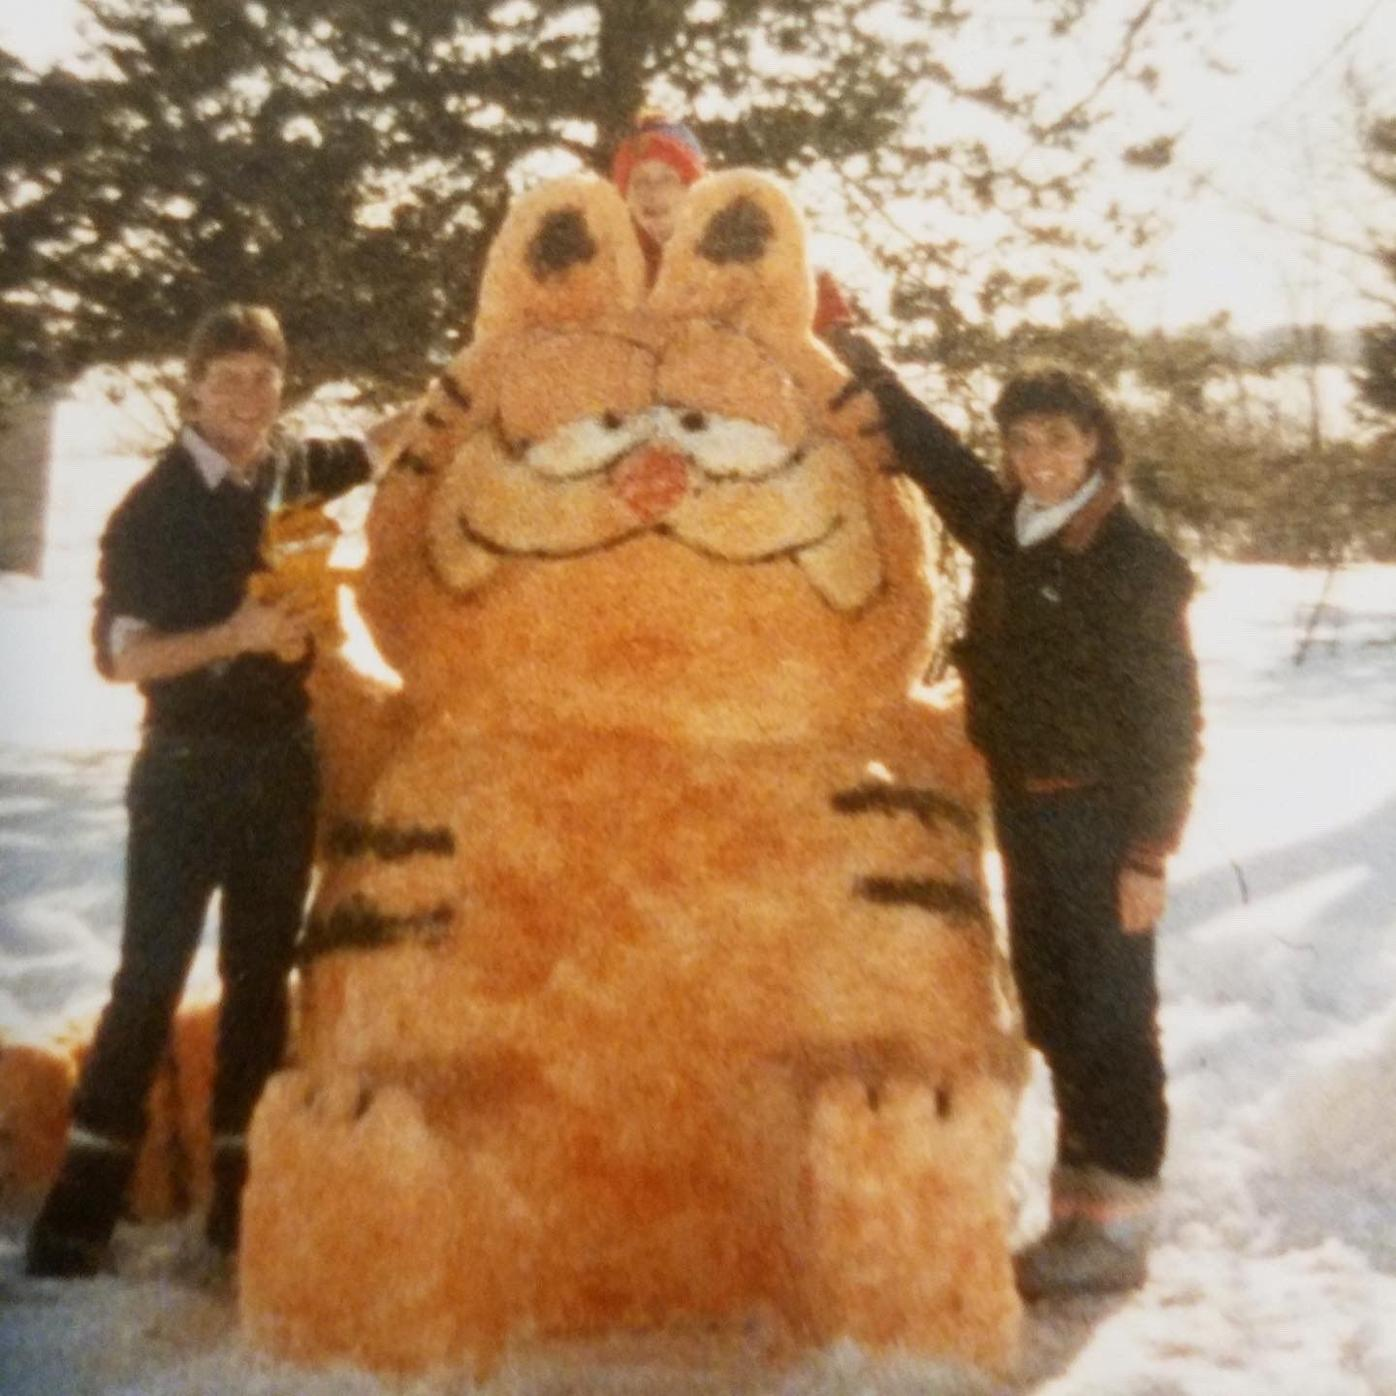 Garfield snowman No. 2